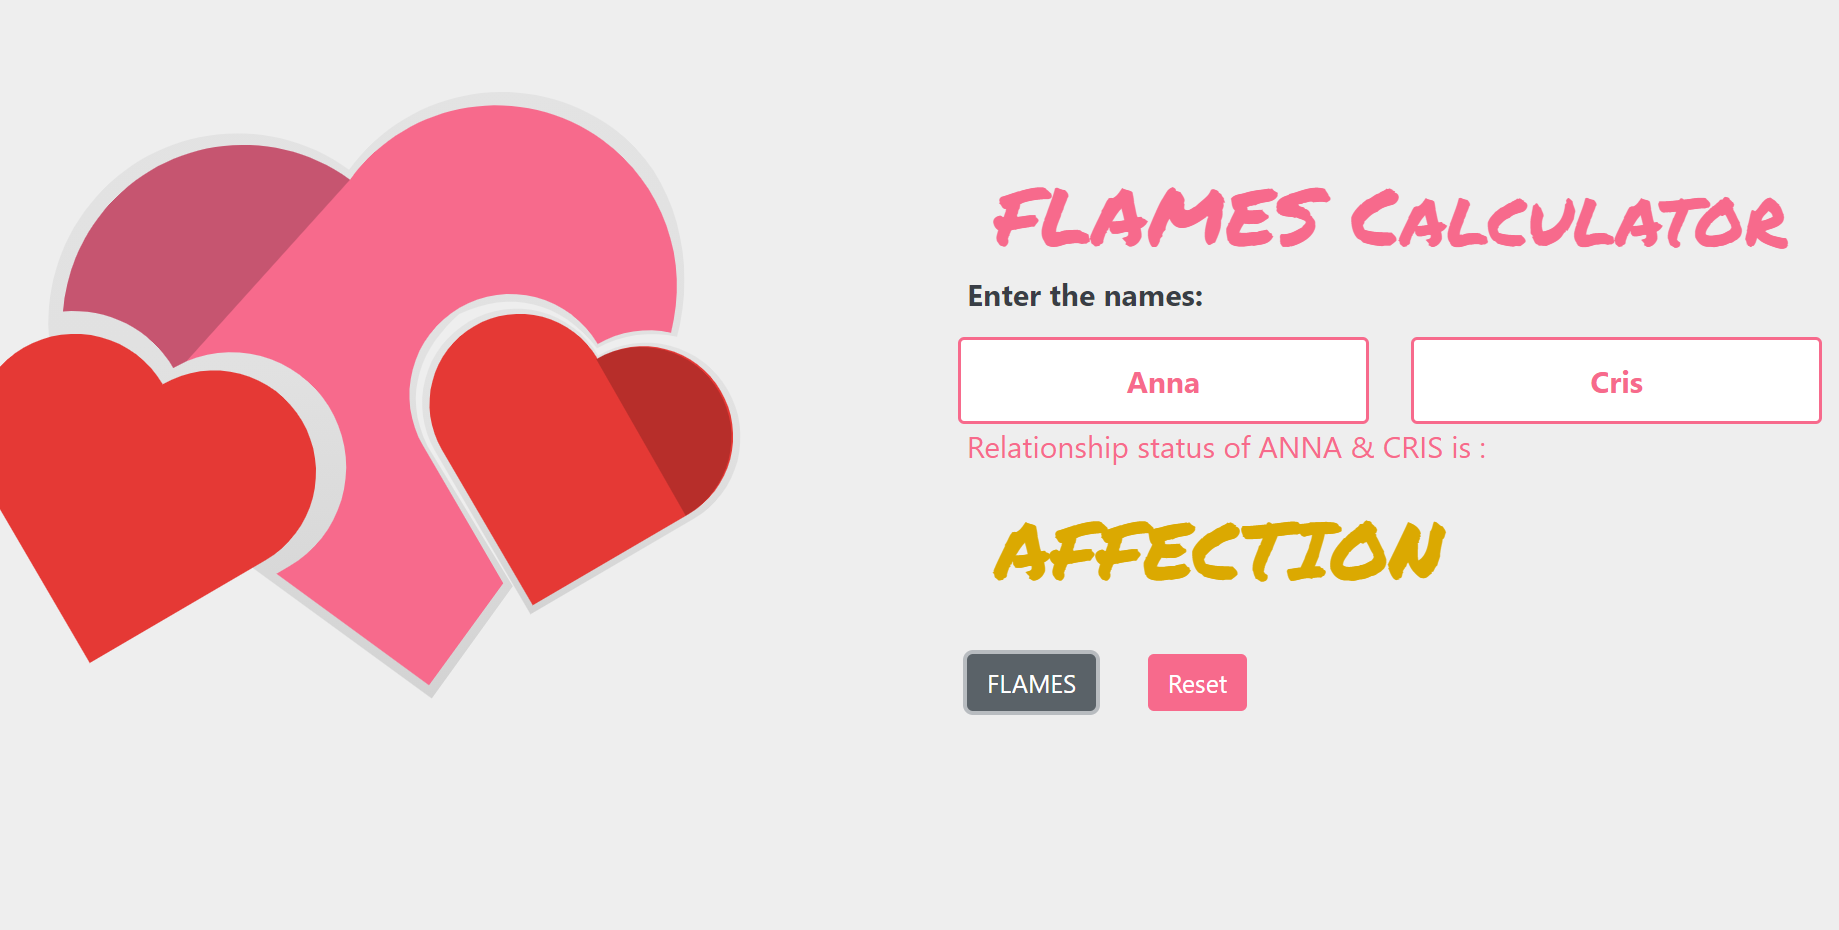 flames calculator